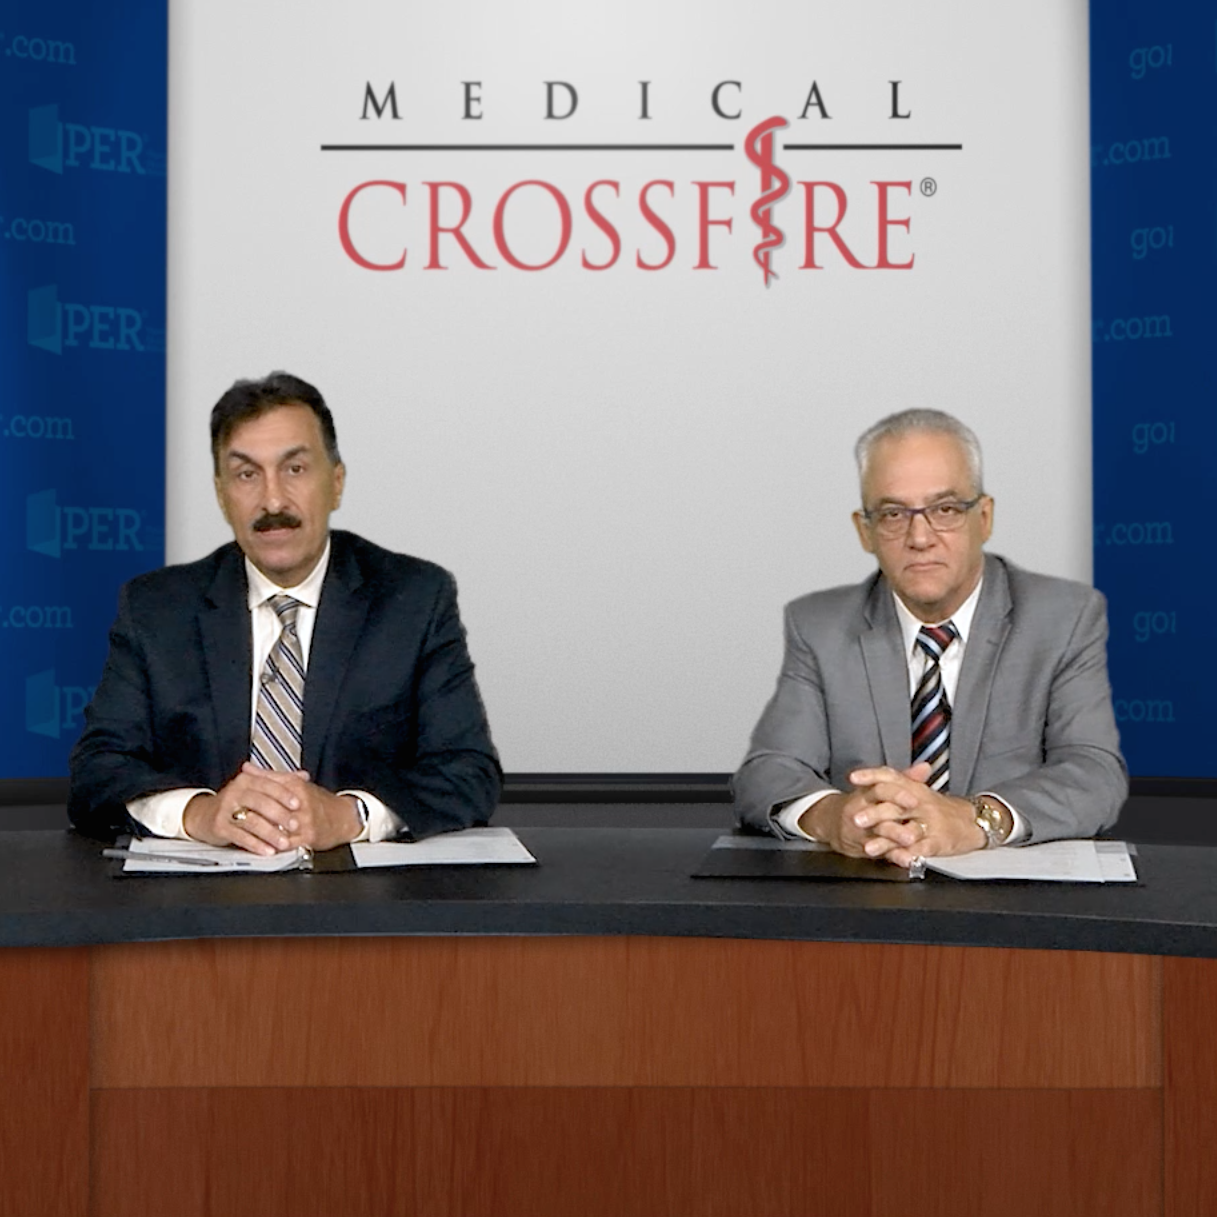 Medical Crossfire®: Schizophrenia and Bipolar Disorder: Barriers to Care, Therapeutic Updates, and Best Practices